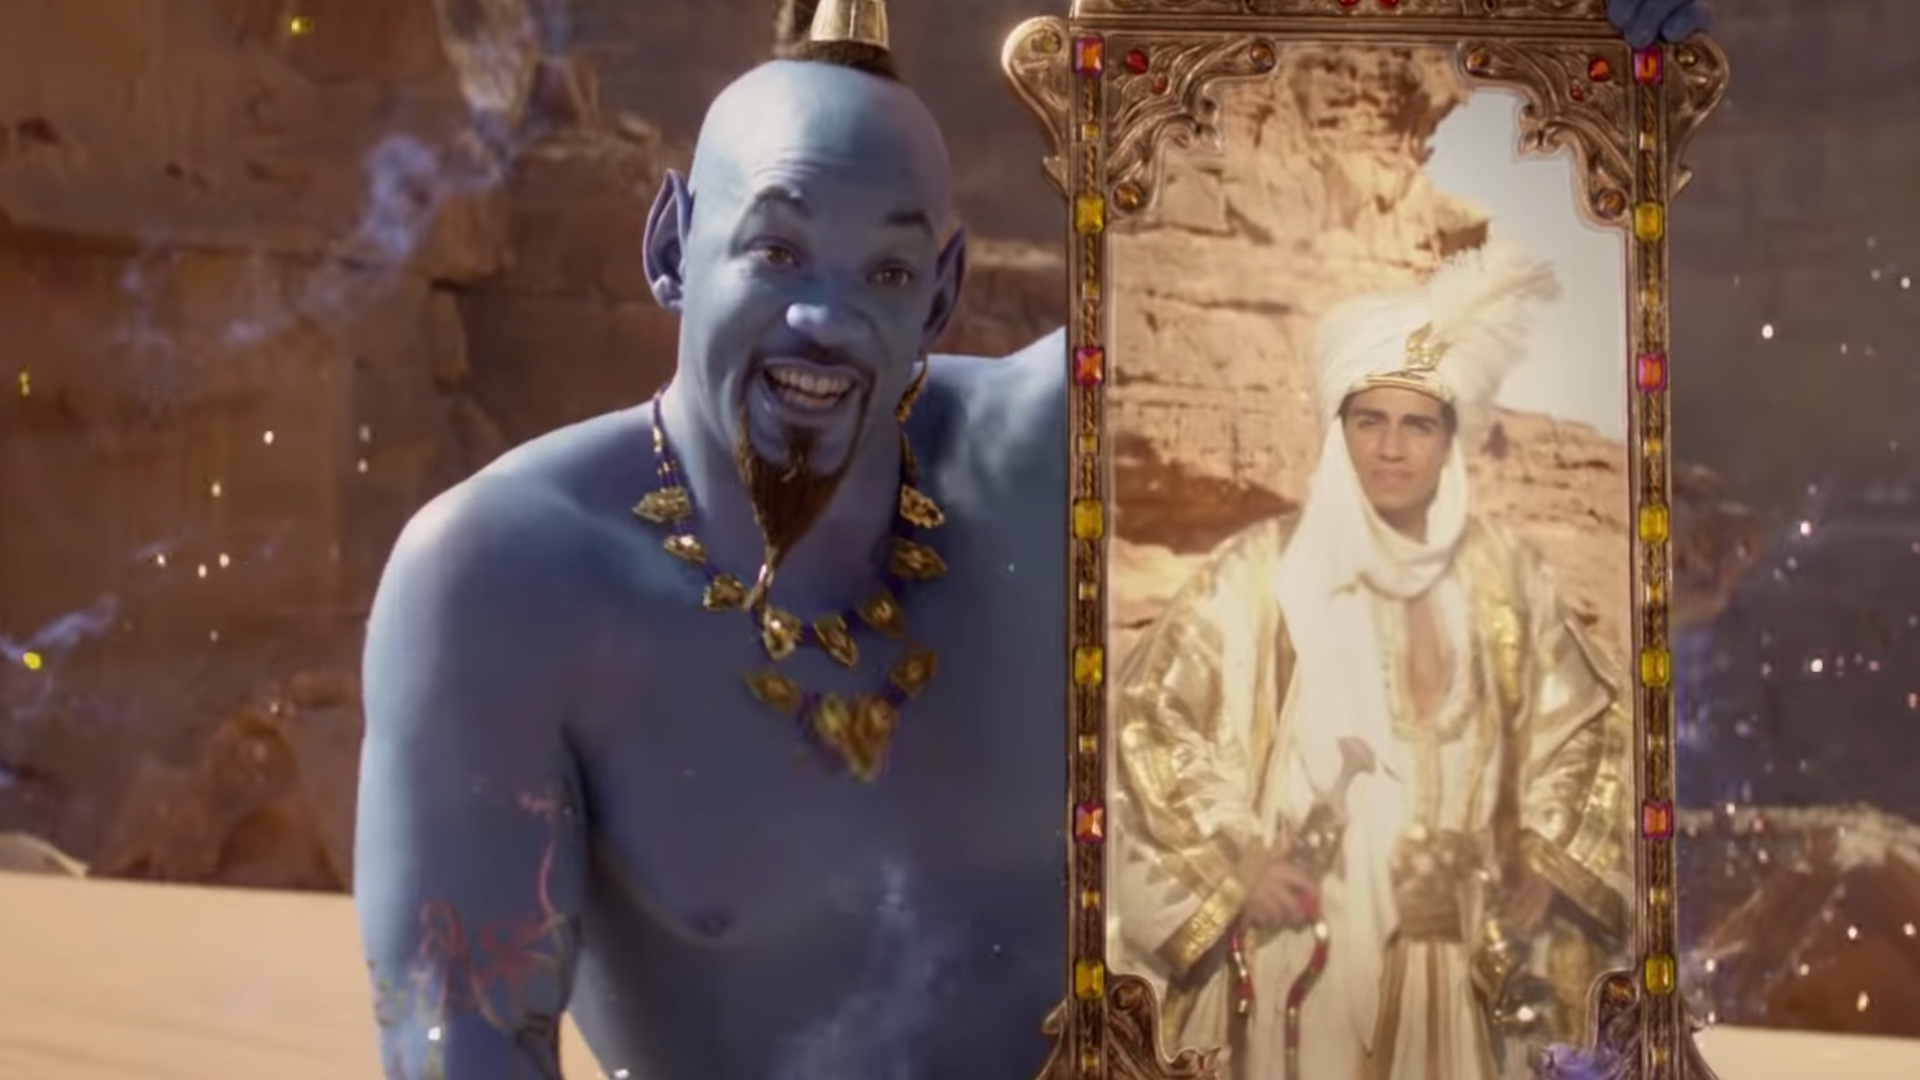 new-tv-spot-for-disneys-aladdin-shows-off-more-new-footage-social.jpg